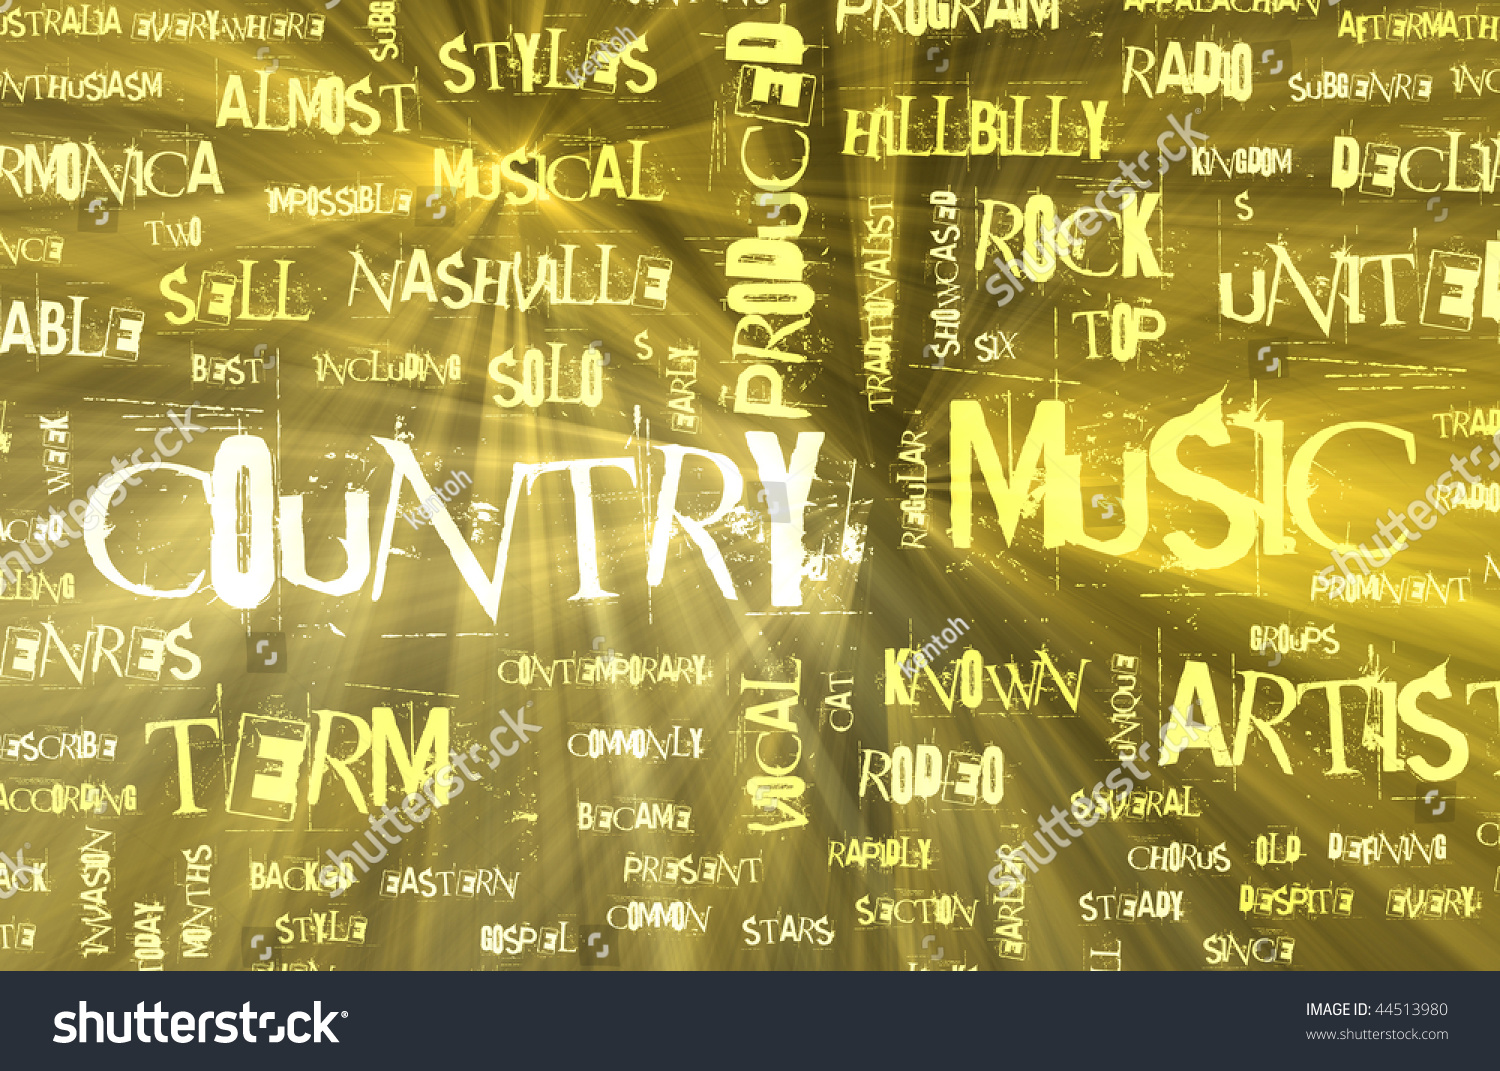 Country Music Genre As A Grunge Background Stock Photo